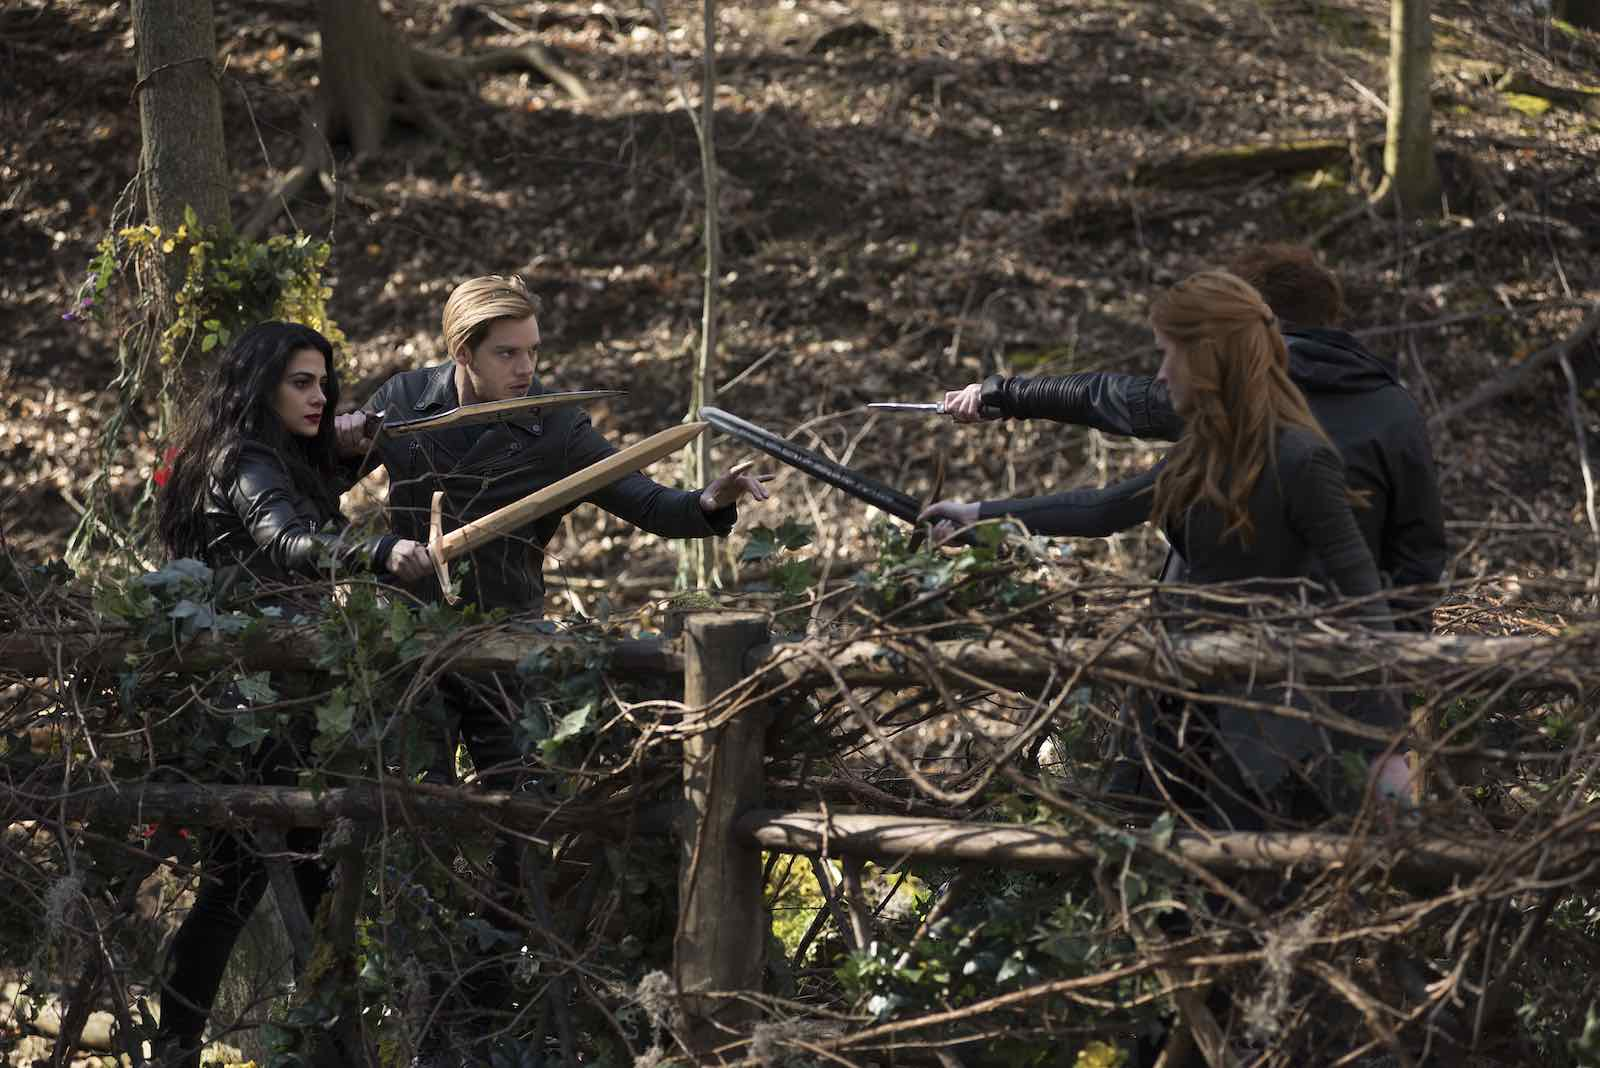 """With our tissues at the ready, we trepidatiously watched 'Shadowhunters' S3e20 """"City of Glass"""", and it was another doozy of an episode."""